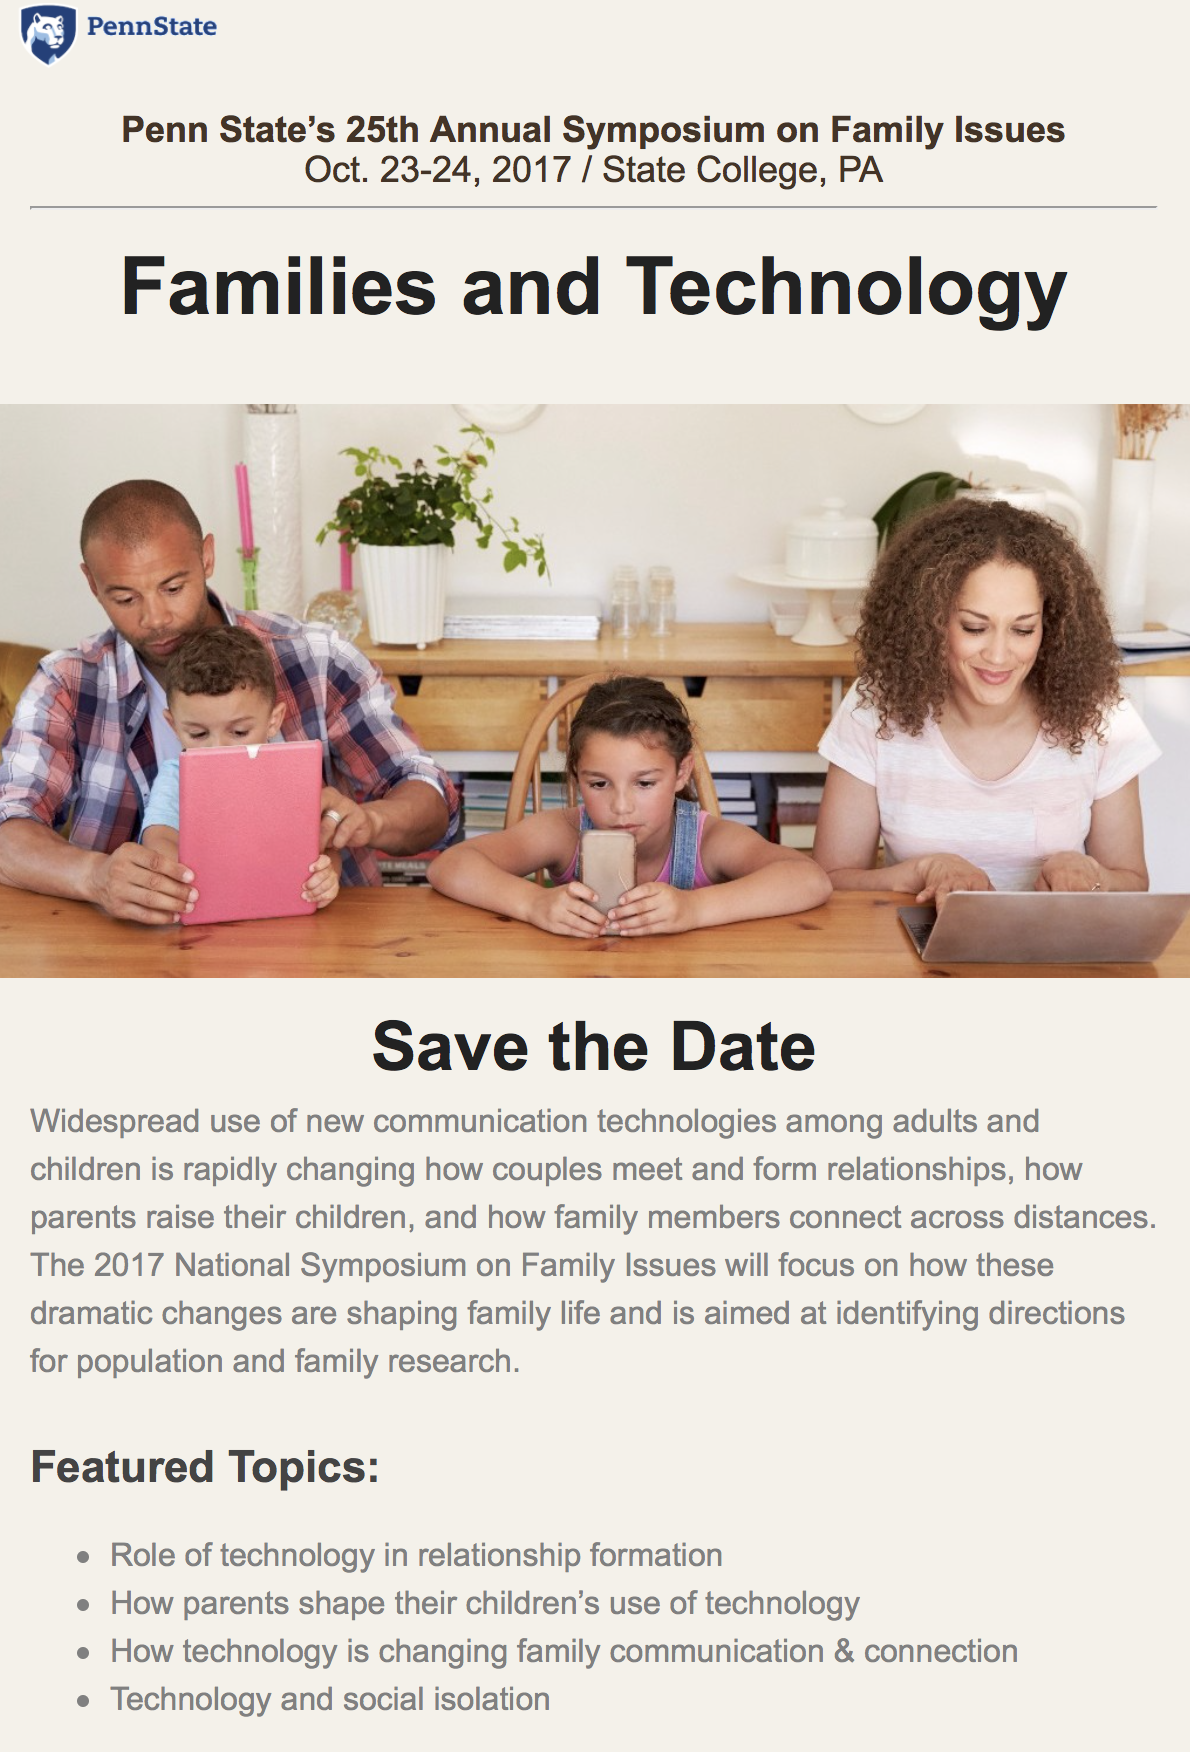 PhD Schwartz to present at theFamily Issues Symposium - Along with co-author and research associate Nicholas Velotta, BA, Pepper Schwartz will be giving a lecture at Penn State on October 23 for her forthcoming article: Online dating: Changing intimacy one swipe at a time?The talk will focus on how online dating has and has not affected the dating and mating game. How did online dating manage to make its way into the mainstream? Do we have a better chance at finding The One in the era of matching algorithms? Who are the most attractive people online...and who are the least? Learn how governments around the world are funding online dating programs to prevent population decline.The lecture will be followed by an open Q&A session with the experts themselves. And while you're there, check out all the other amazing topics. Like how Tinder may lead to faster marriages and how children using technology changes family roles and rules.